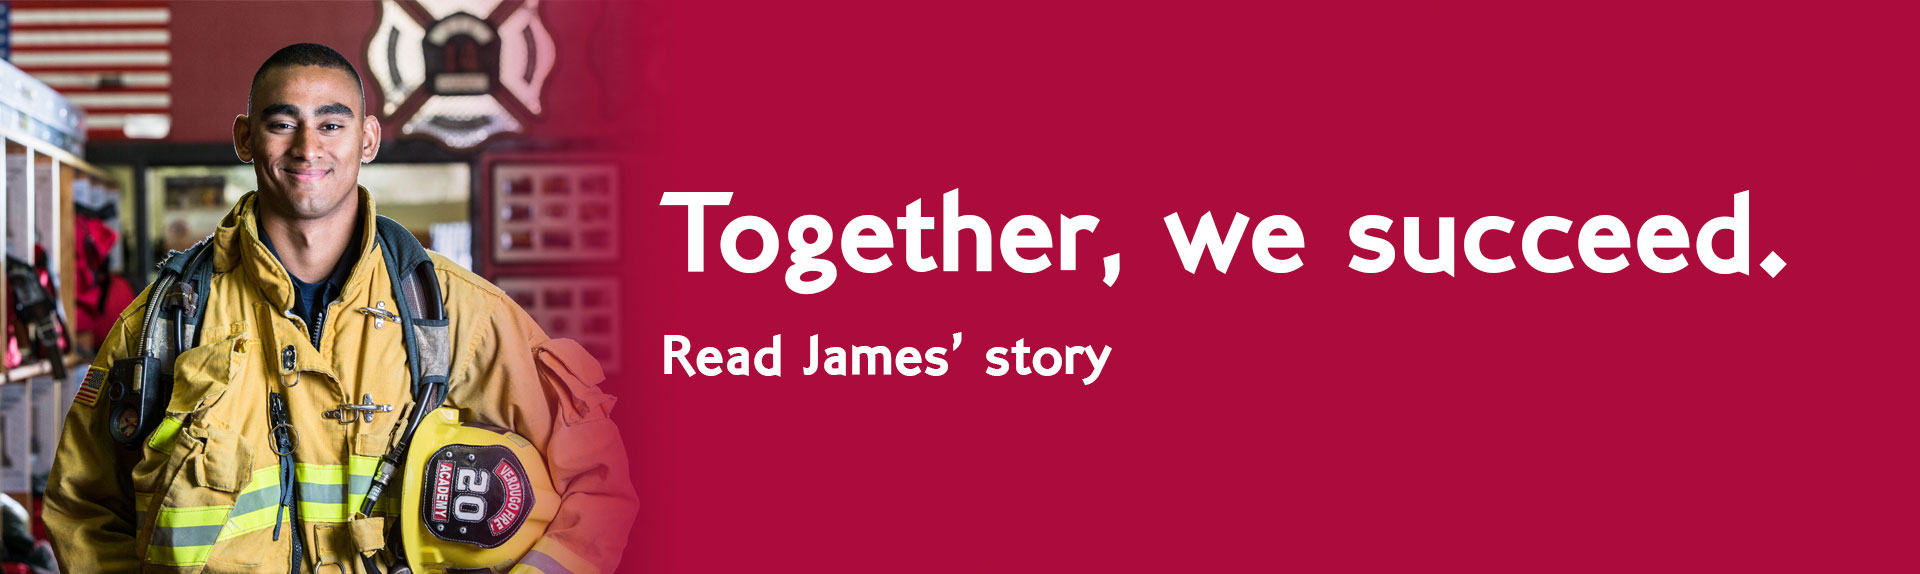 Together, we succeed. Read James' story